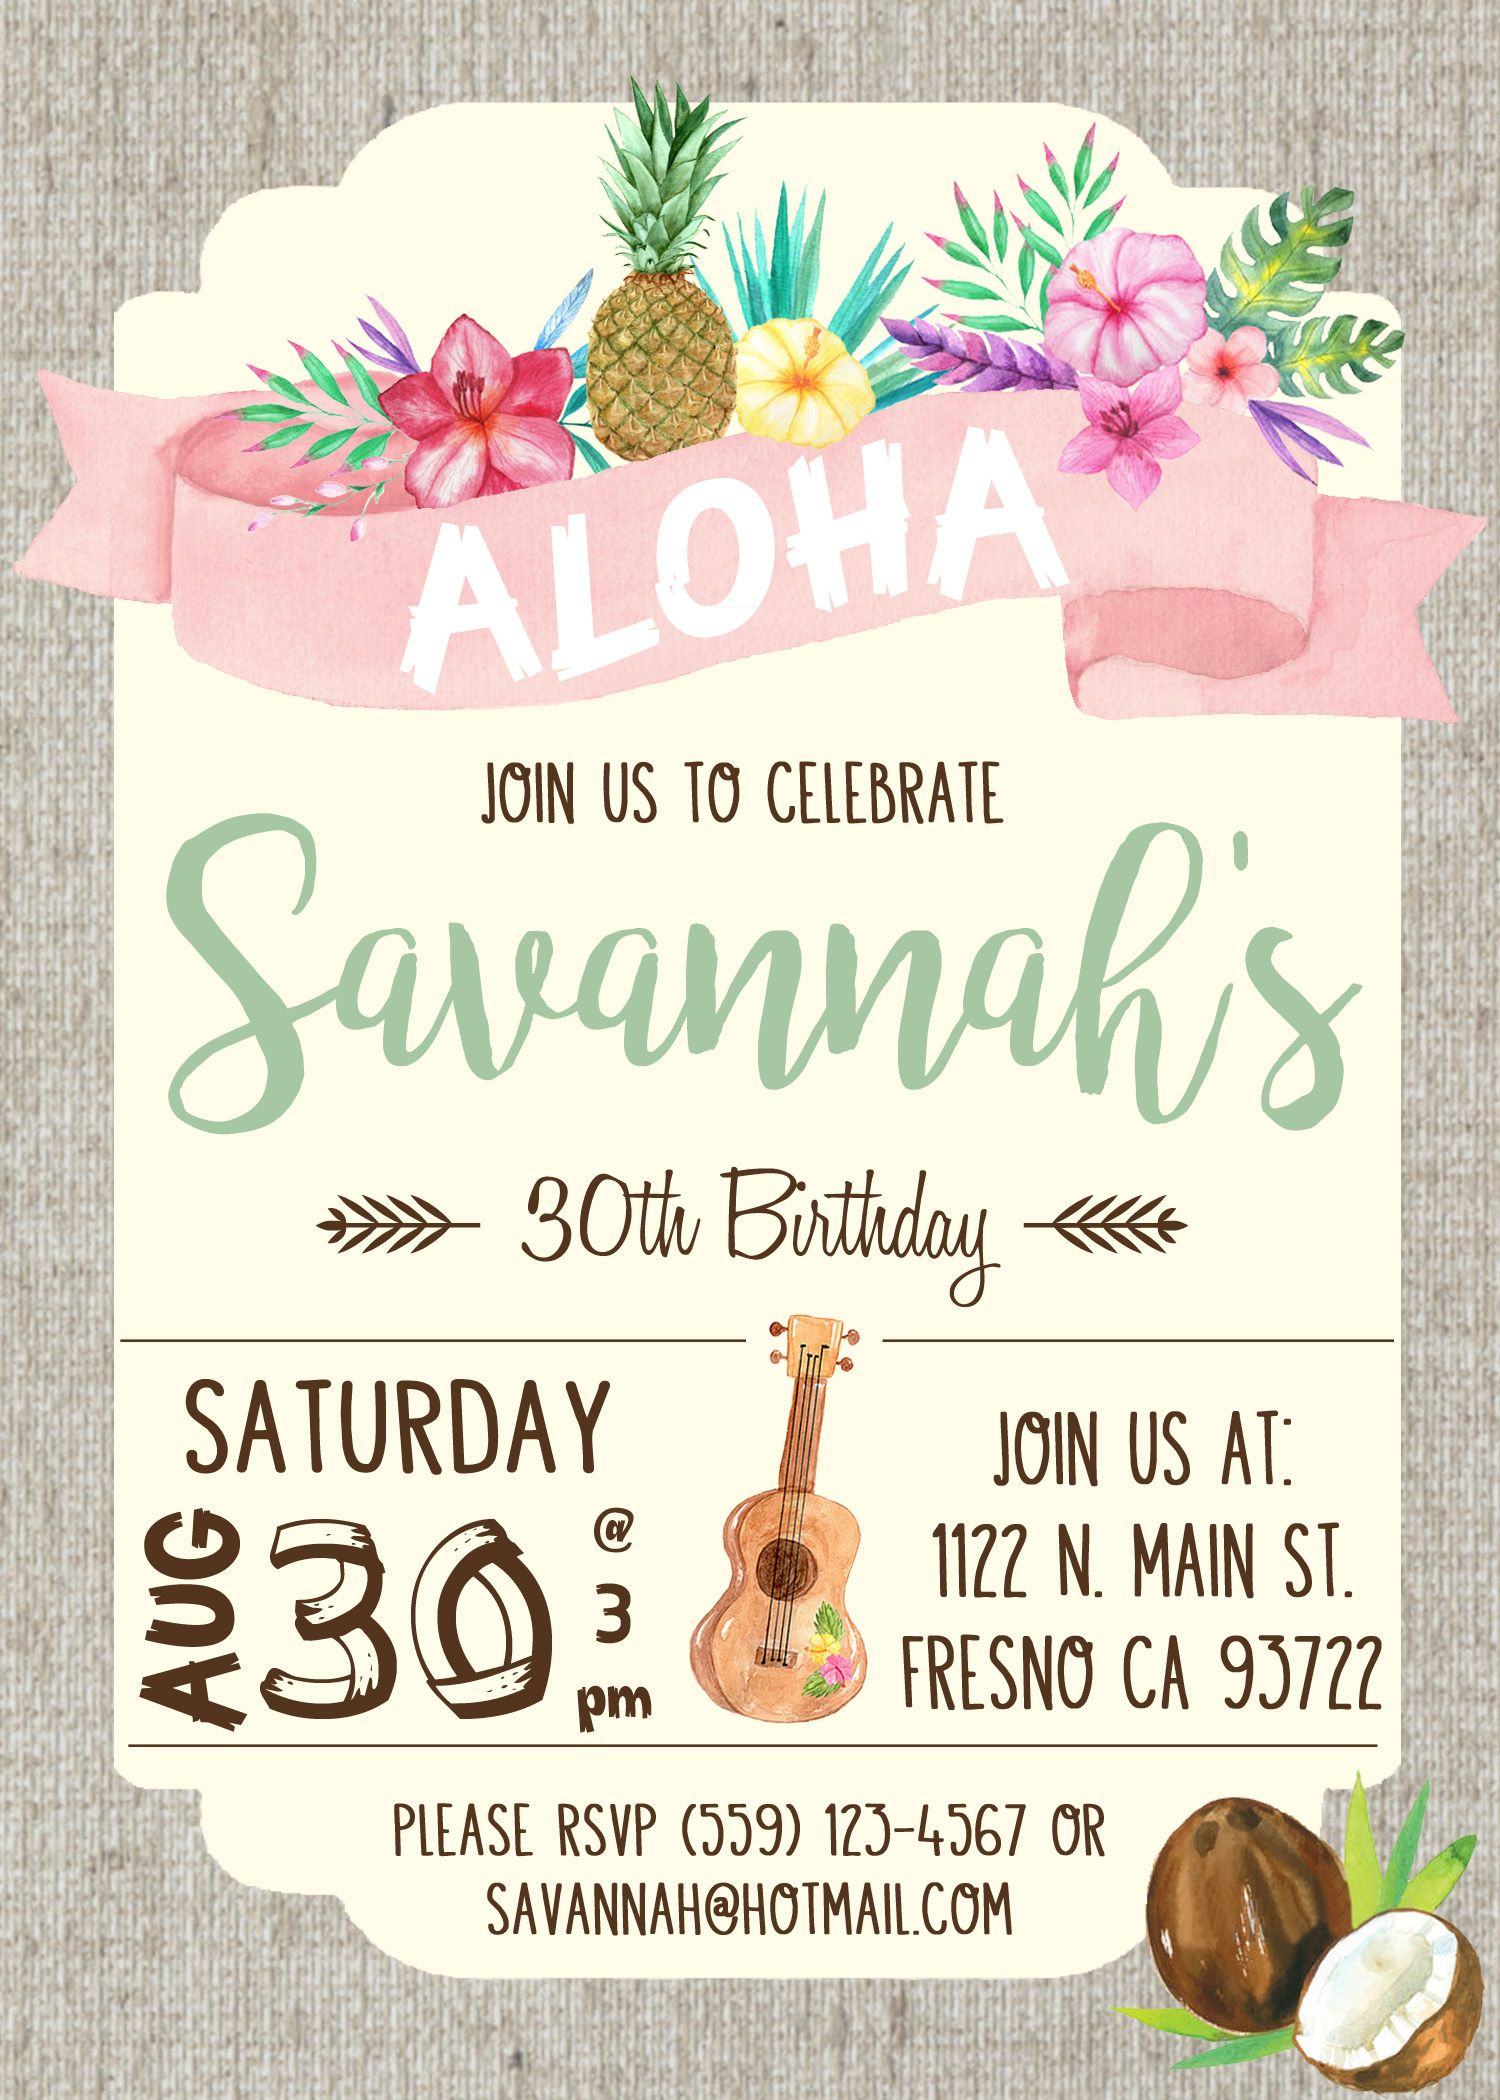 Hawaiian luau birthday party invitation invite watercolor flowers hawaiian luau birthday party invitation invite watercolor flowers shabby chic ukulele pineapple coconut aloha monicamarmolfo Images